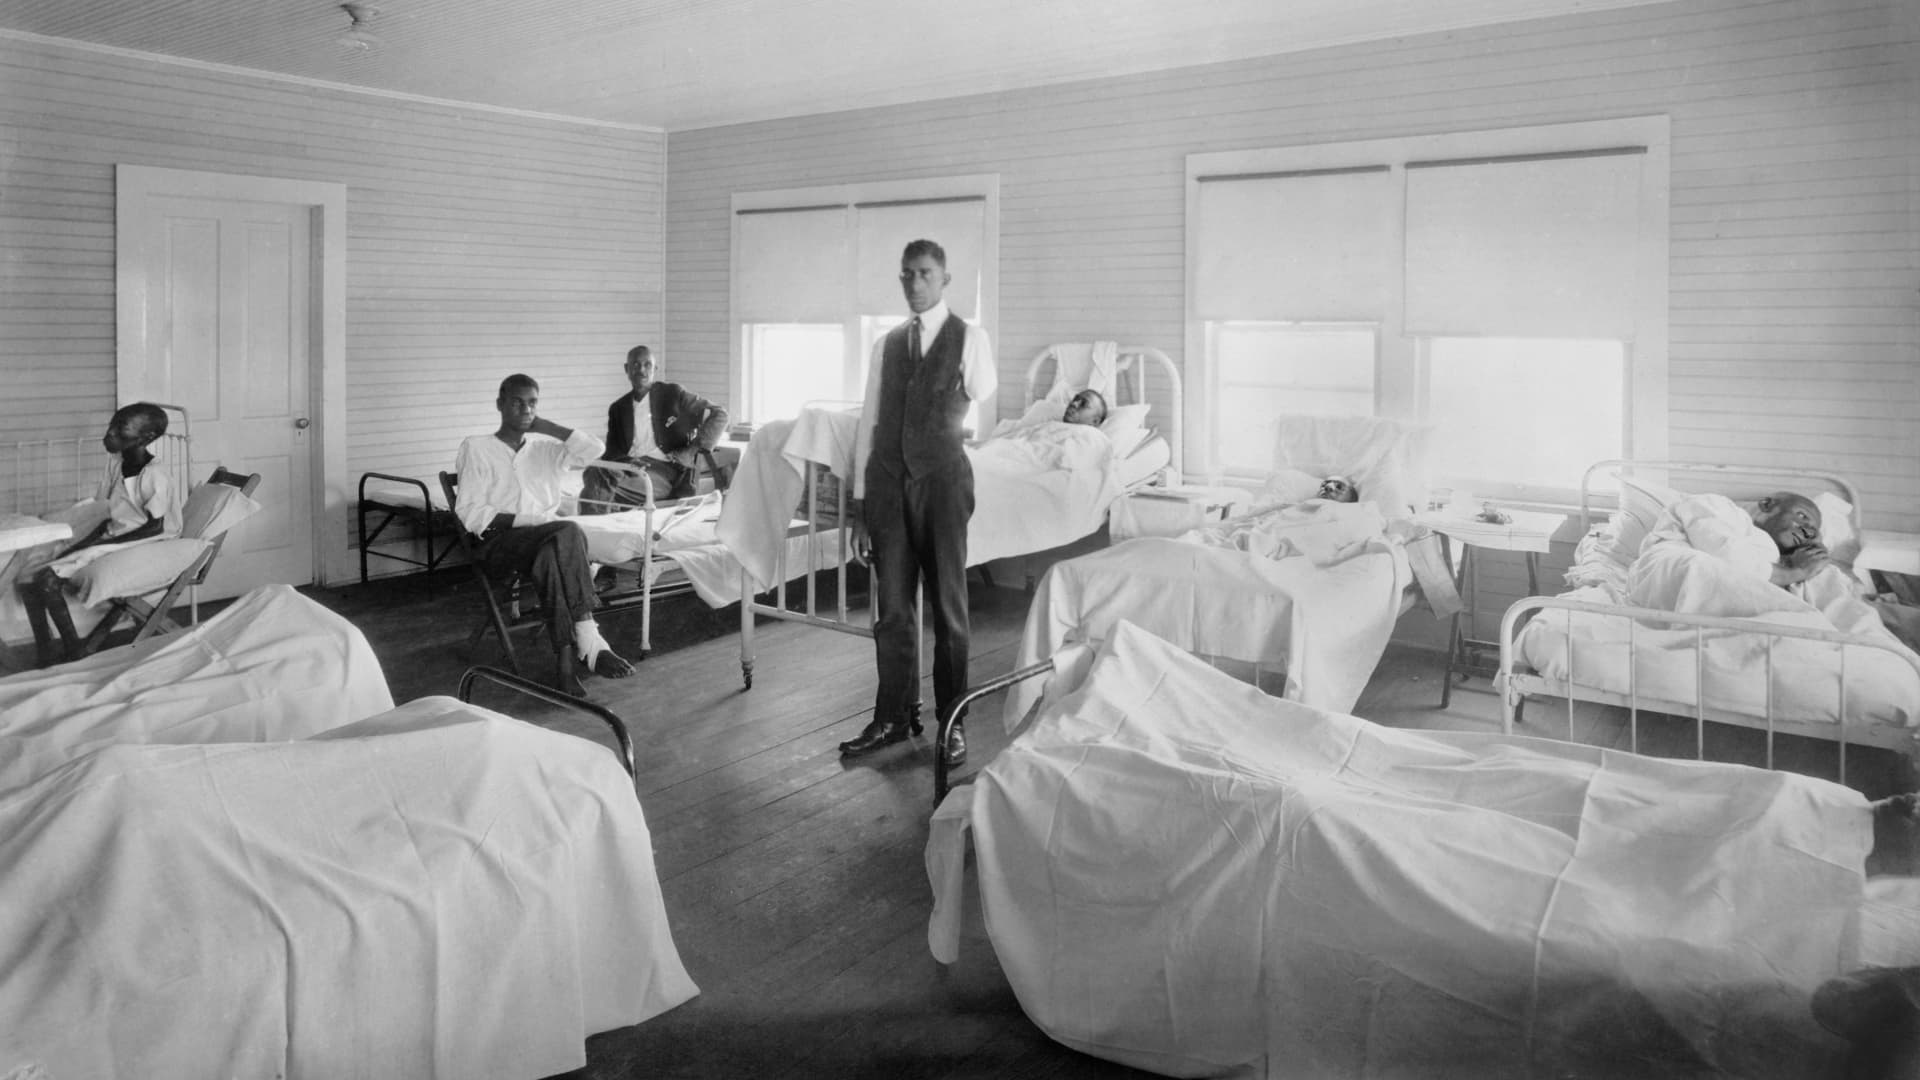 Patients recovering from injuries sustained in the Tulsa massacre. American National Red Cross Photograph Collection, November 1921.